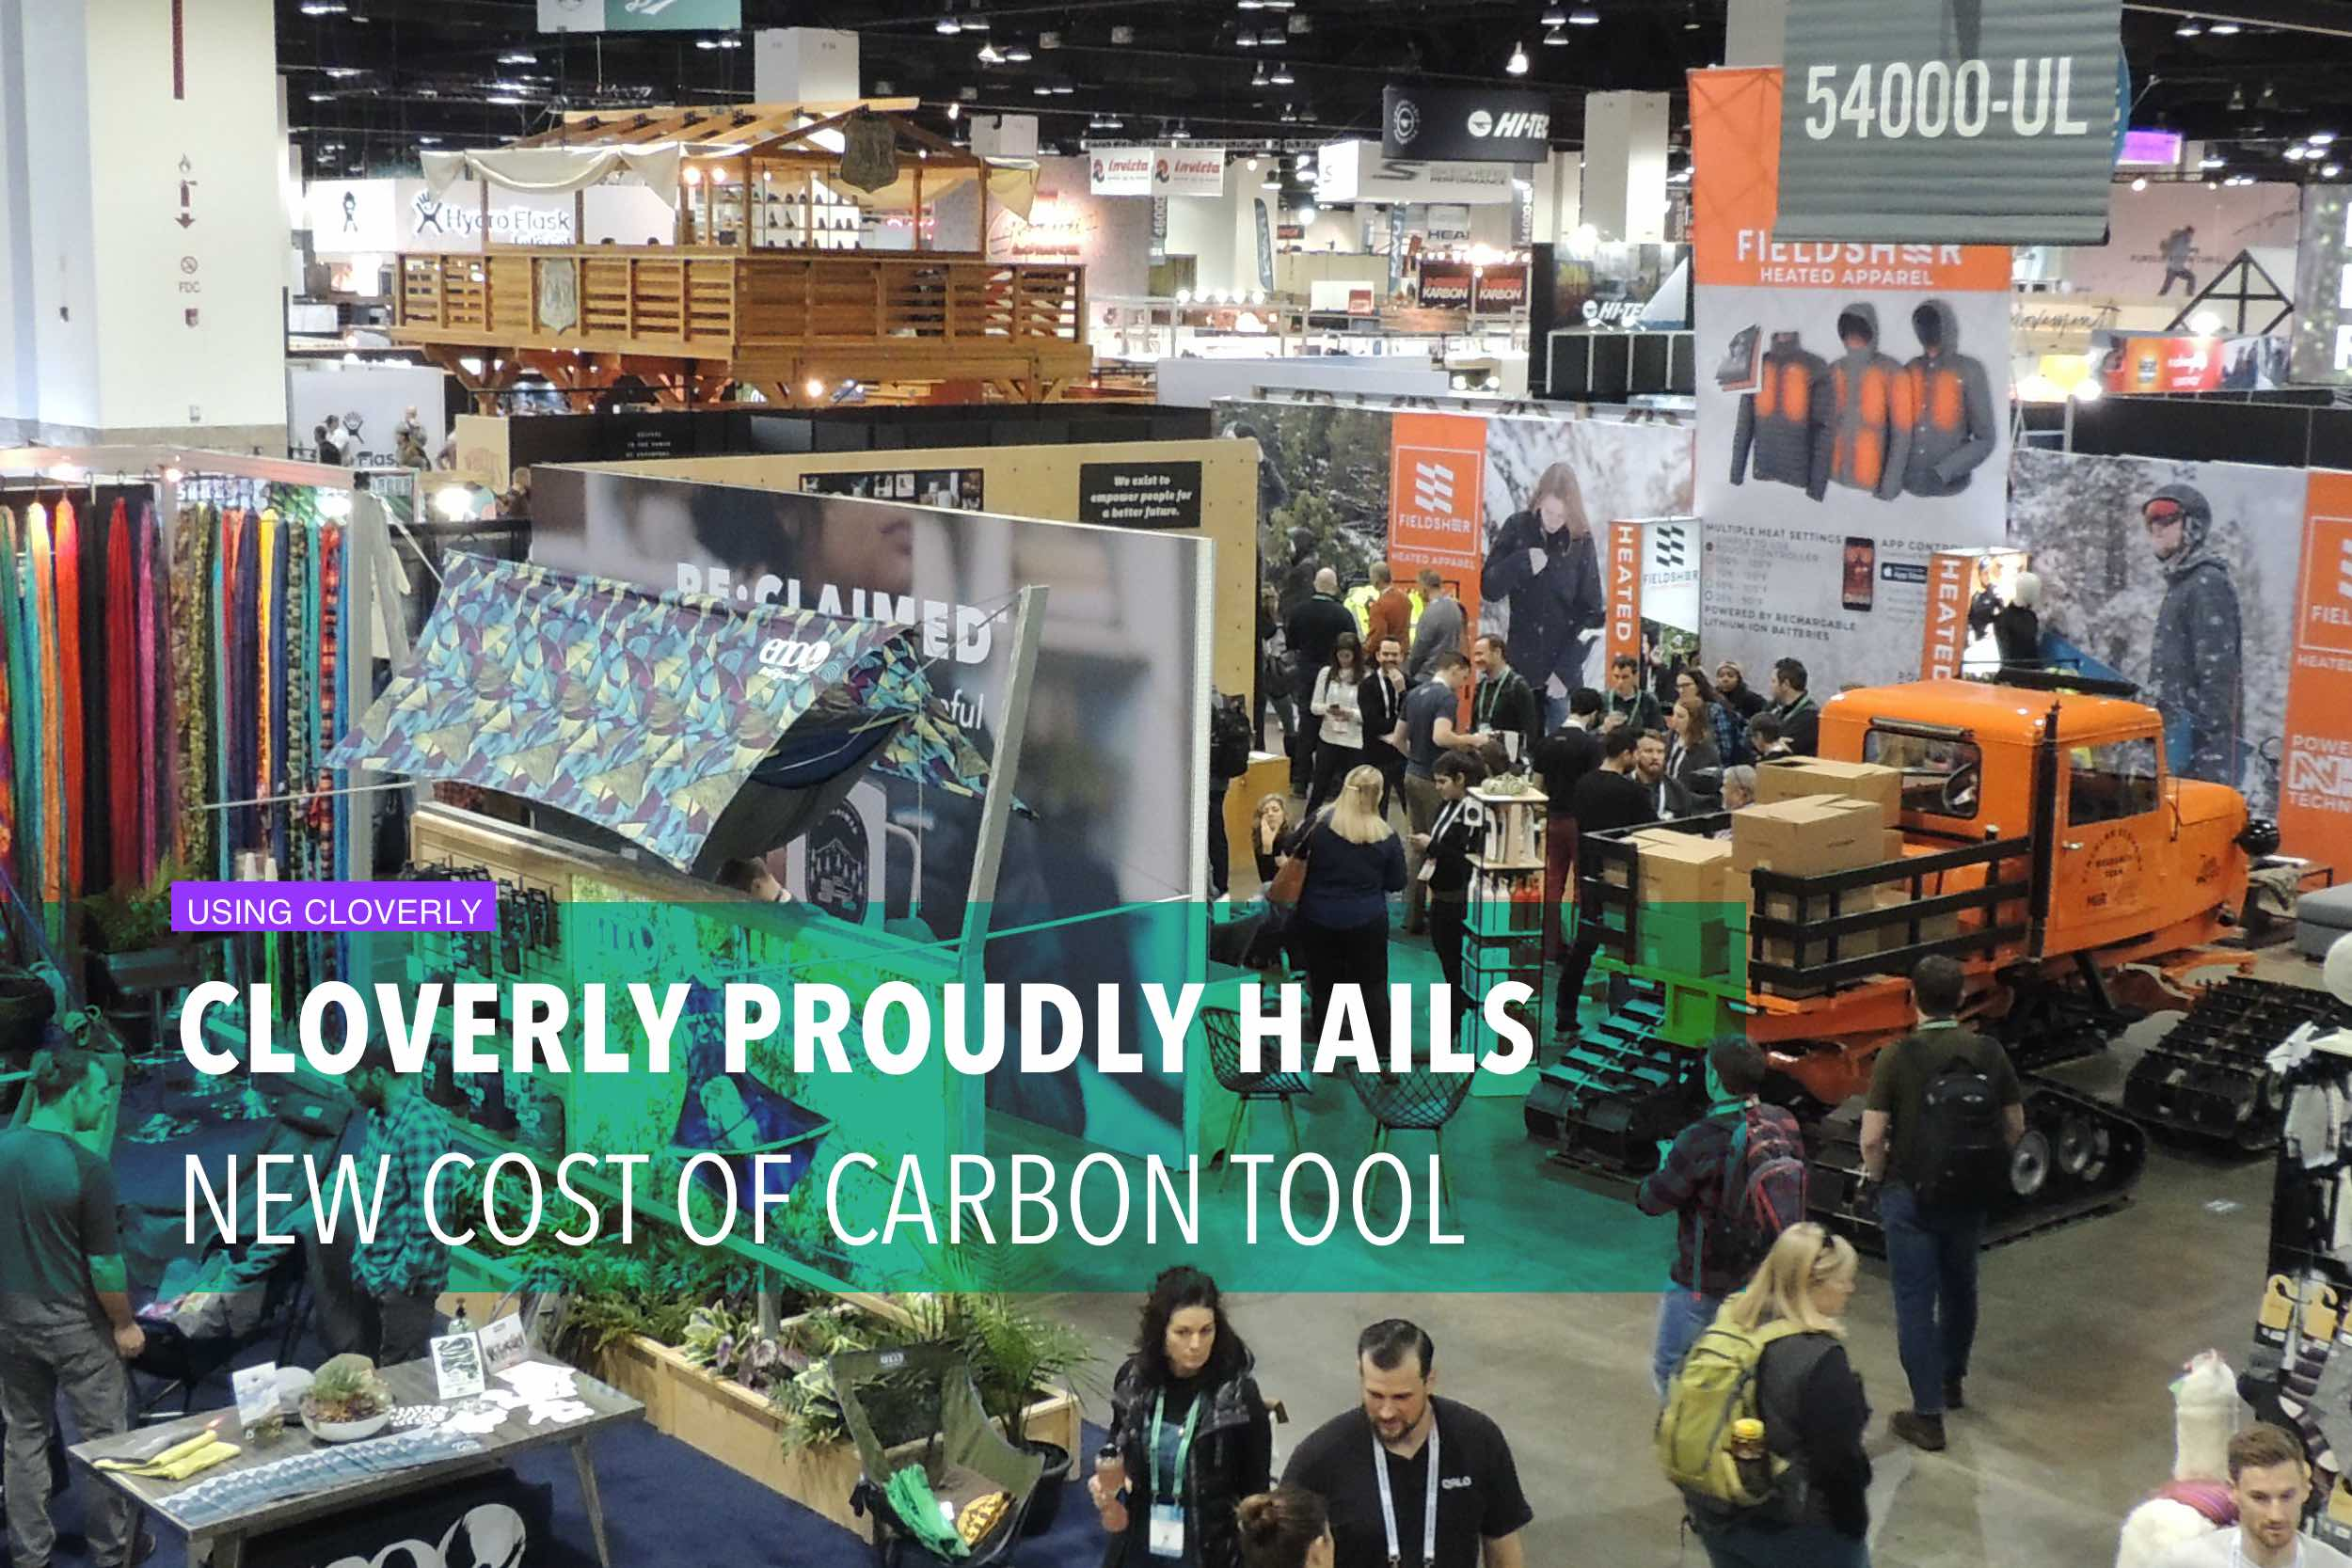 Cloverly proudly hails new Cost of Carbon tool